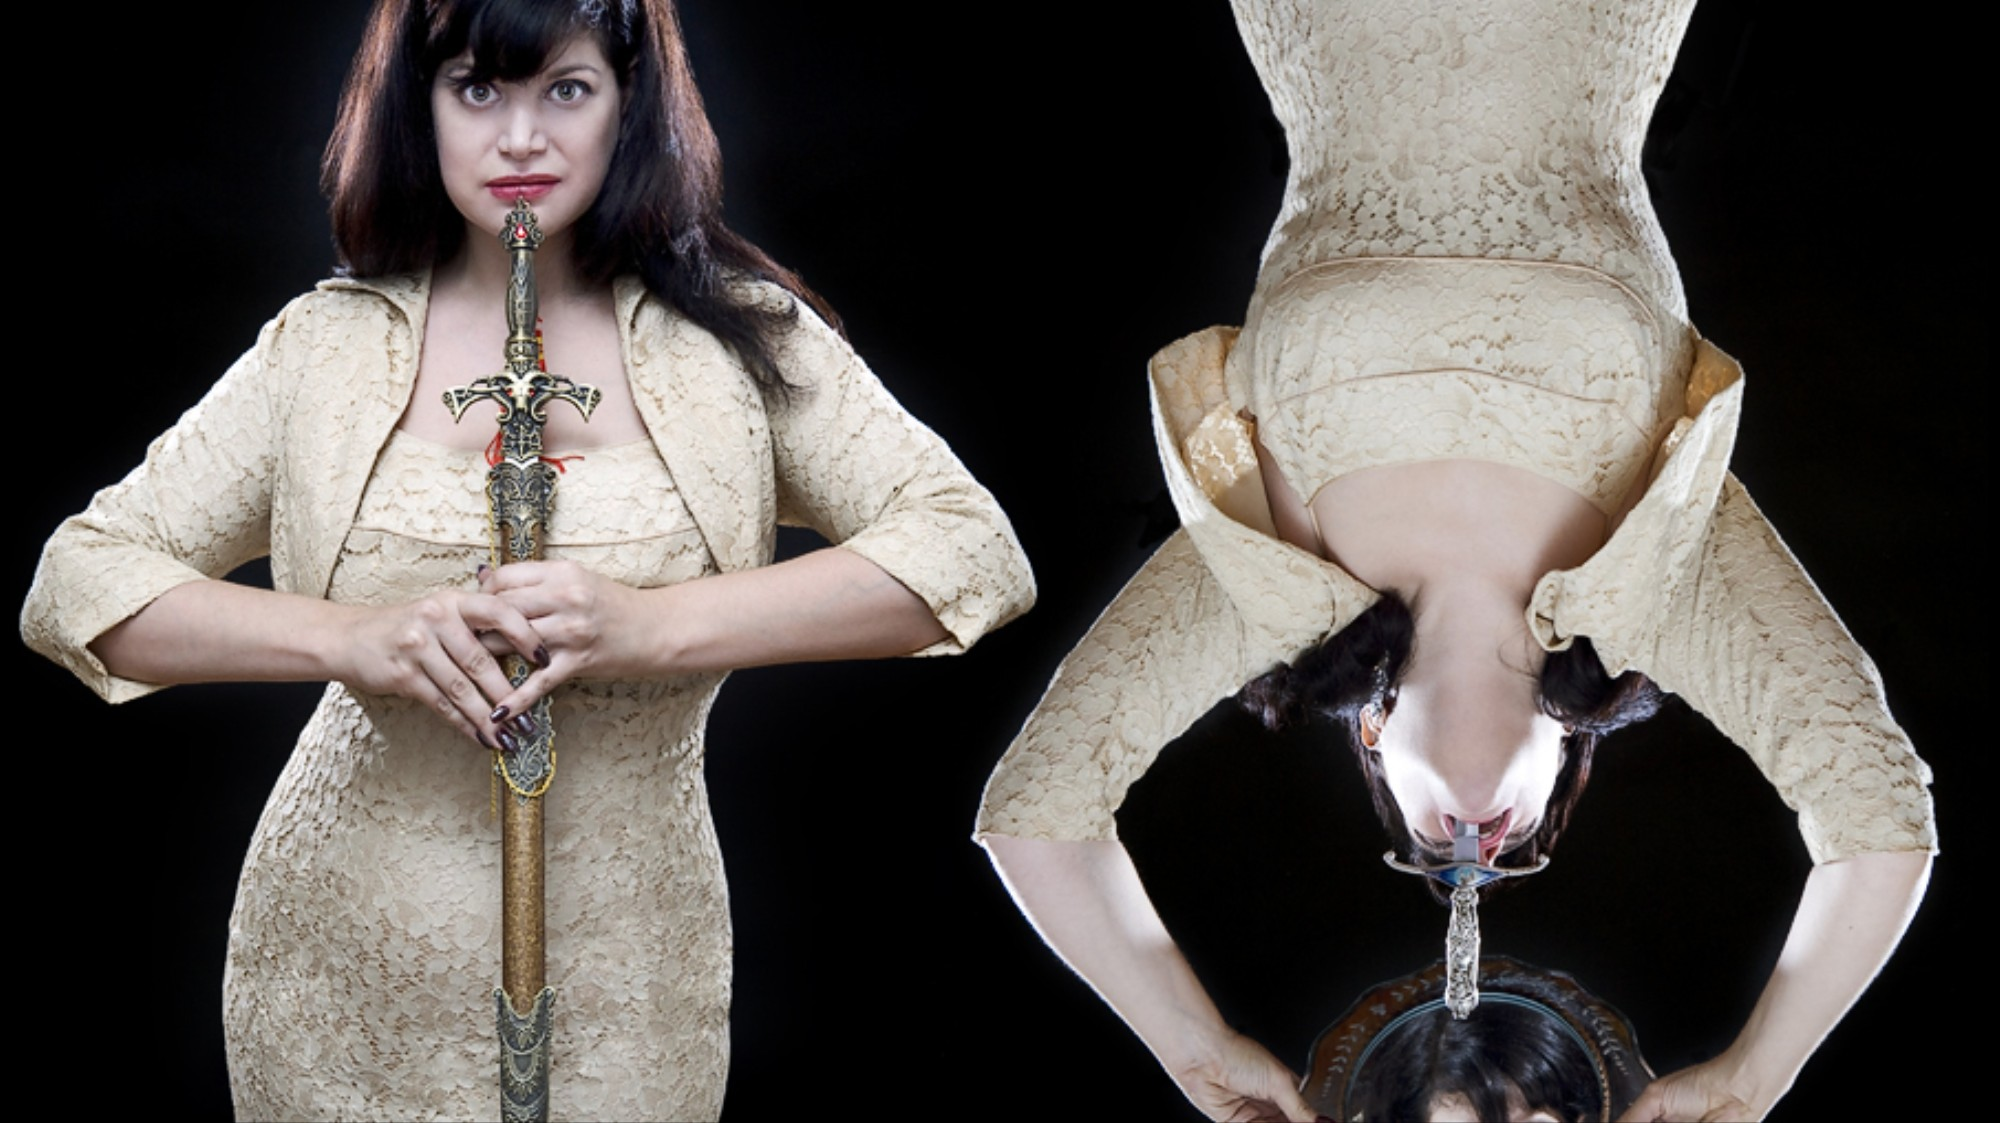 Meet One of the World's Only Female Sword Swallowers - VICE